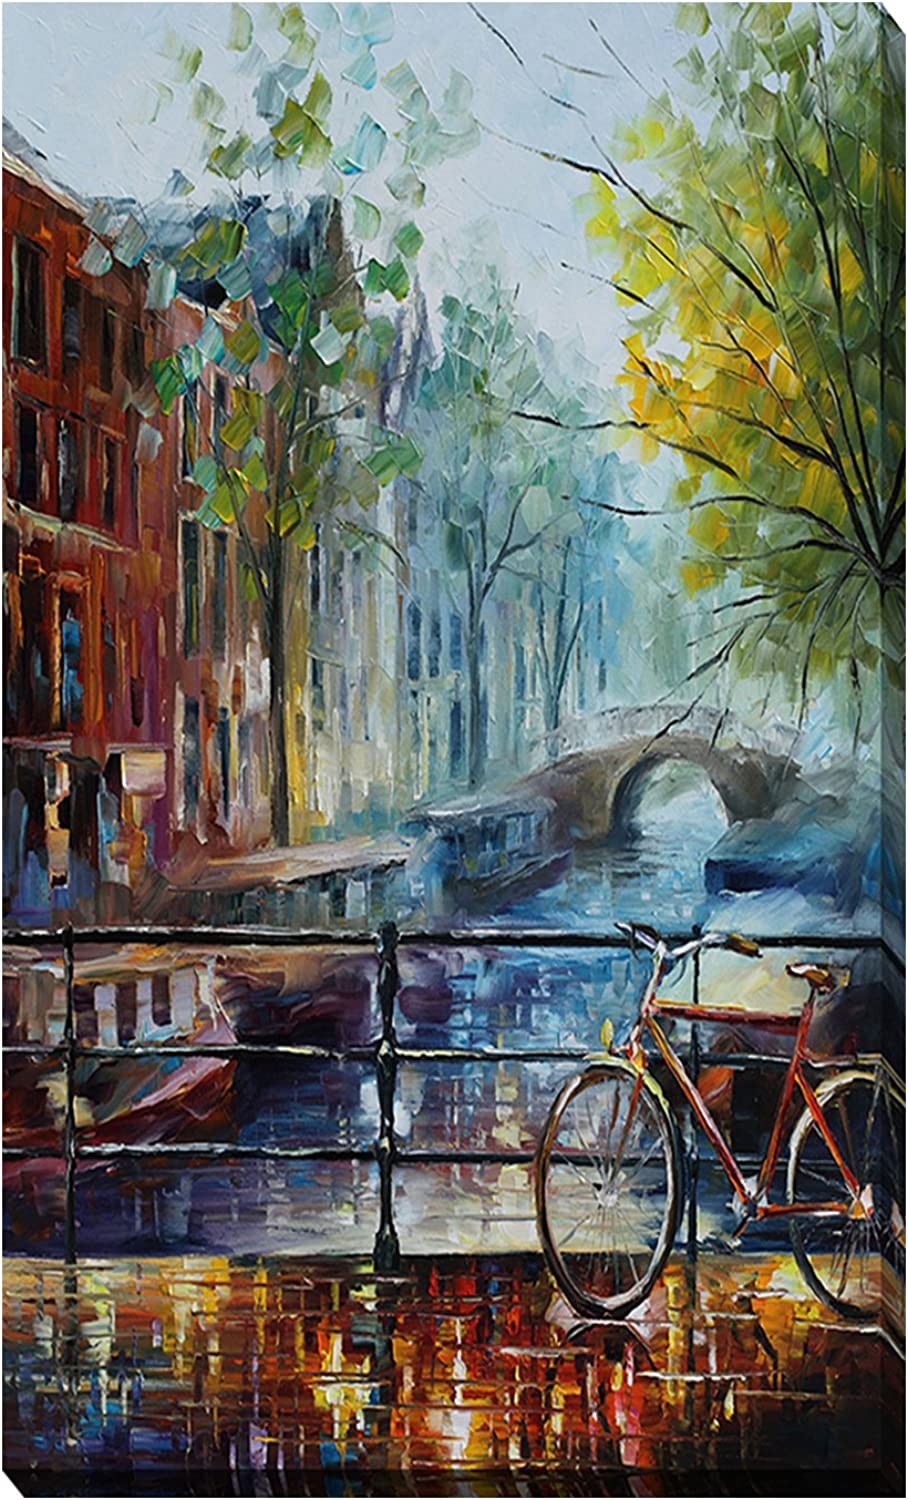 Picture Perfect International Bicycle In Amsterdam by Leonid Afremov Giclee Stretched Canvas Wall Art, 18  x 30  x 1  (704-0691_1830)